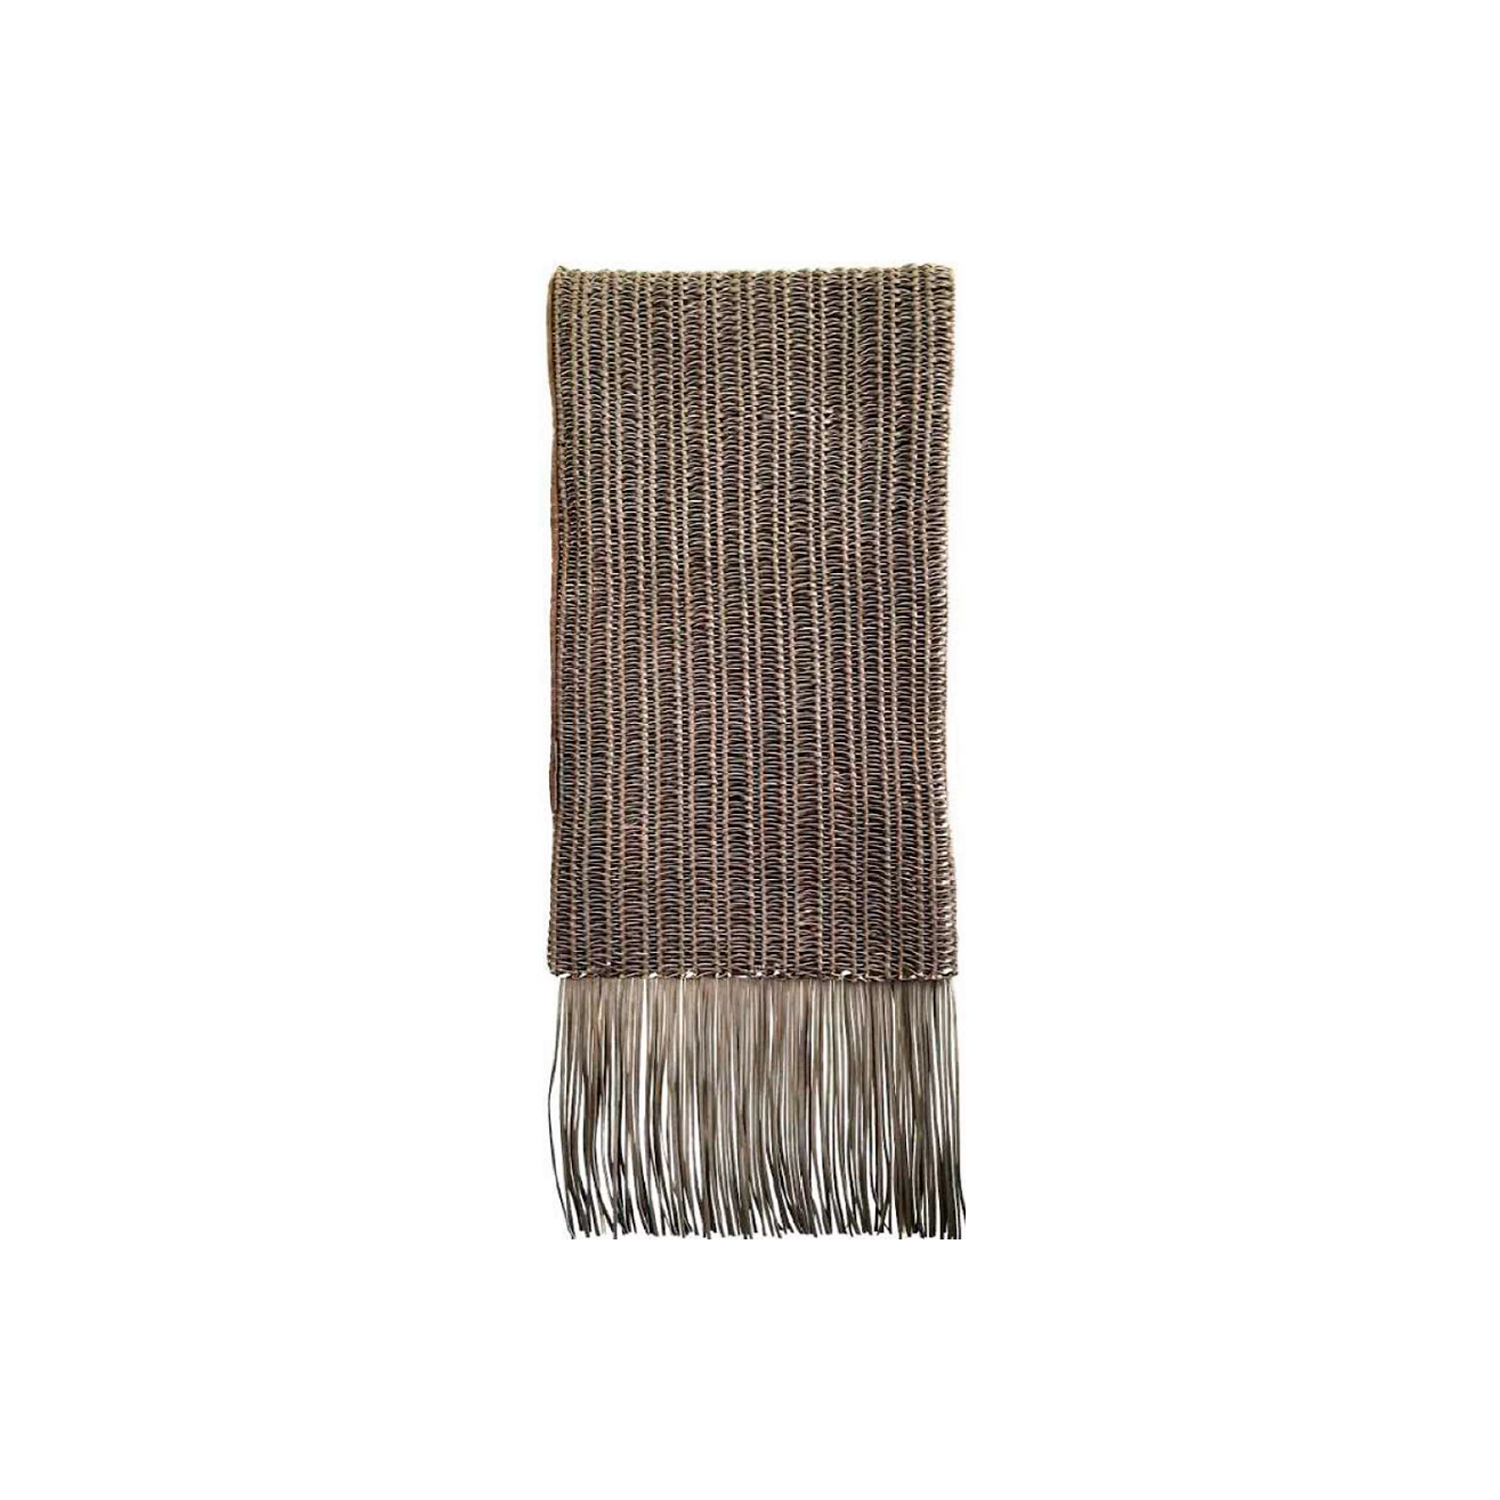 Corda Fringe Woven Leather Throw - The Corda Fringe Woven Leather Throw is designed to complement an ambient setting with natural and sophisticated feeling. Elisa Atheniense woven leather pieces, are handmade and manufactured in Brazil using an exclusive treated leather that brings the soft feel touch to every single piece.  Bespoke sizes and colours are also available upon request, see colour chart for reference. | Matter of Stuff